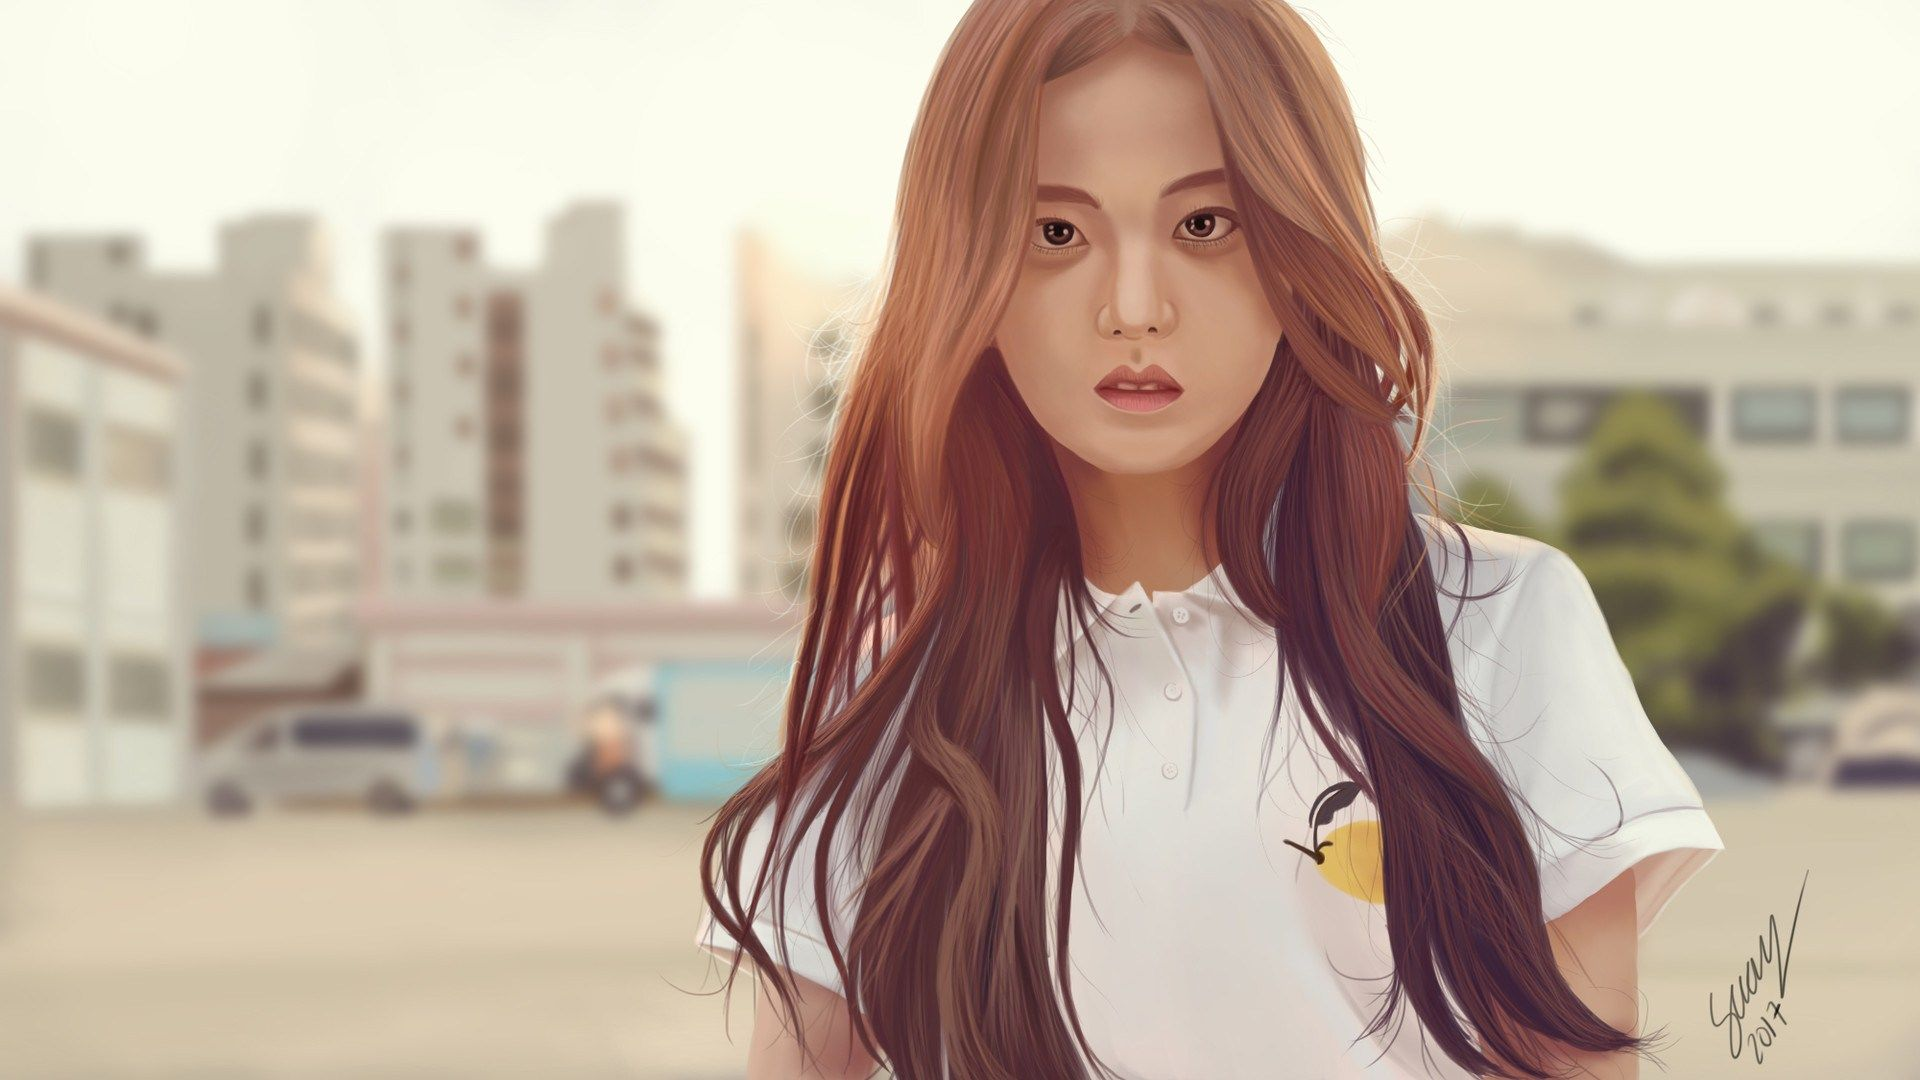 Blackpink Jennie Aesthetic Blackpink Jisoo 68906 Hd Wallpaper Backgrounds Download